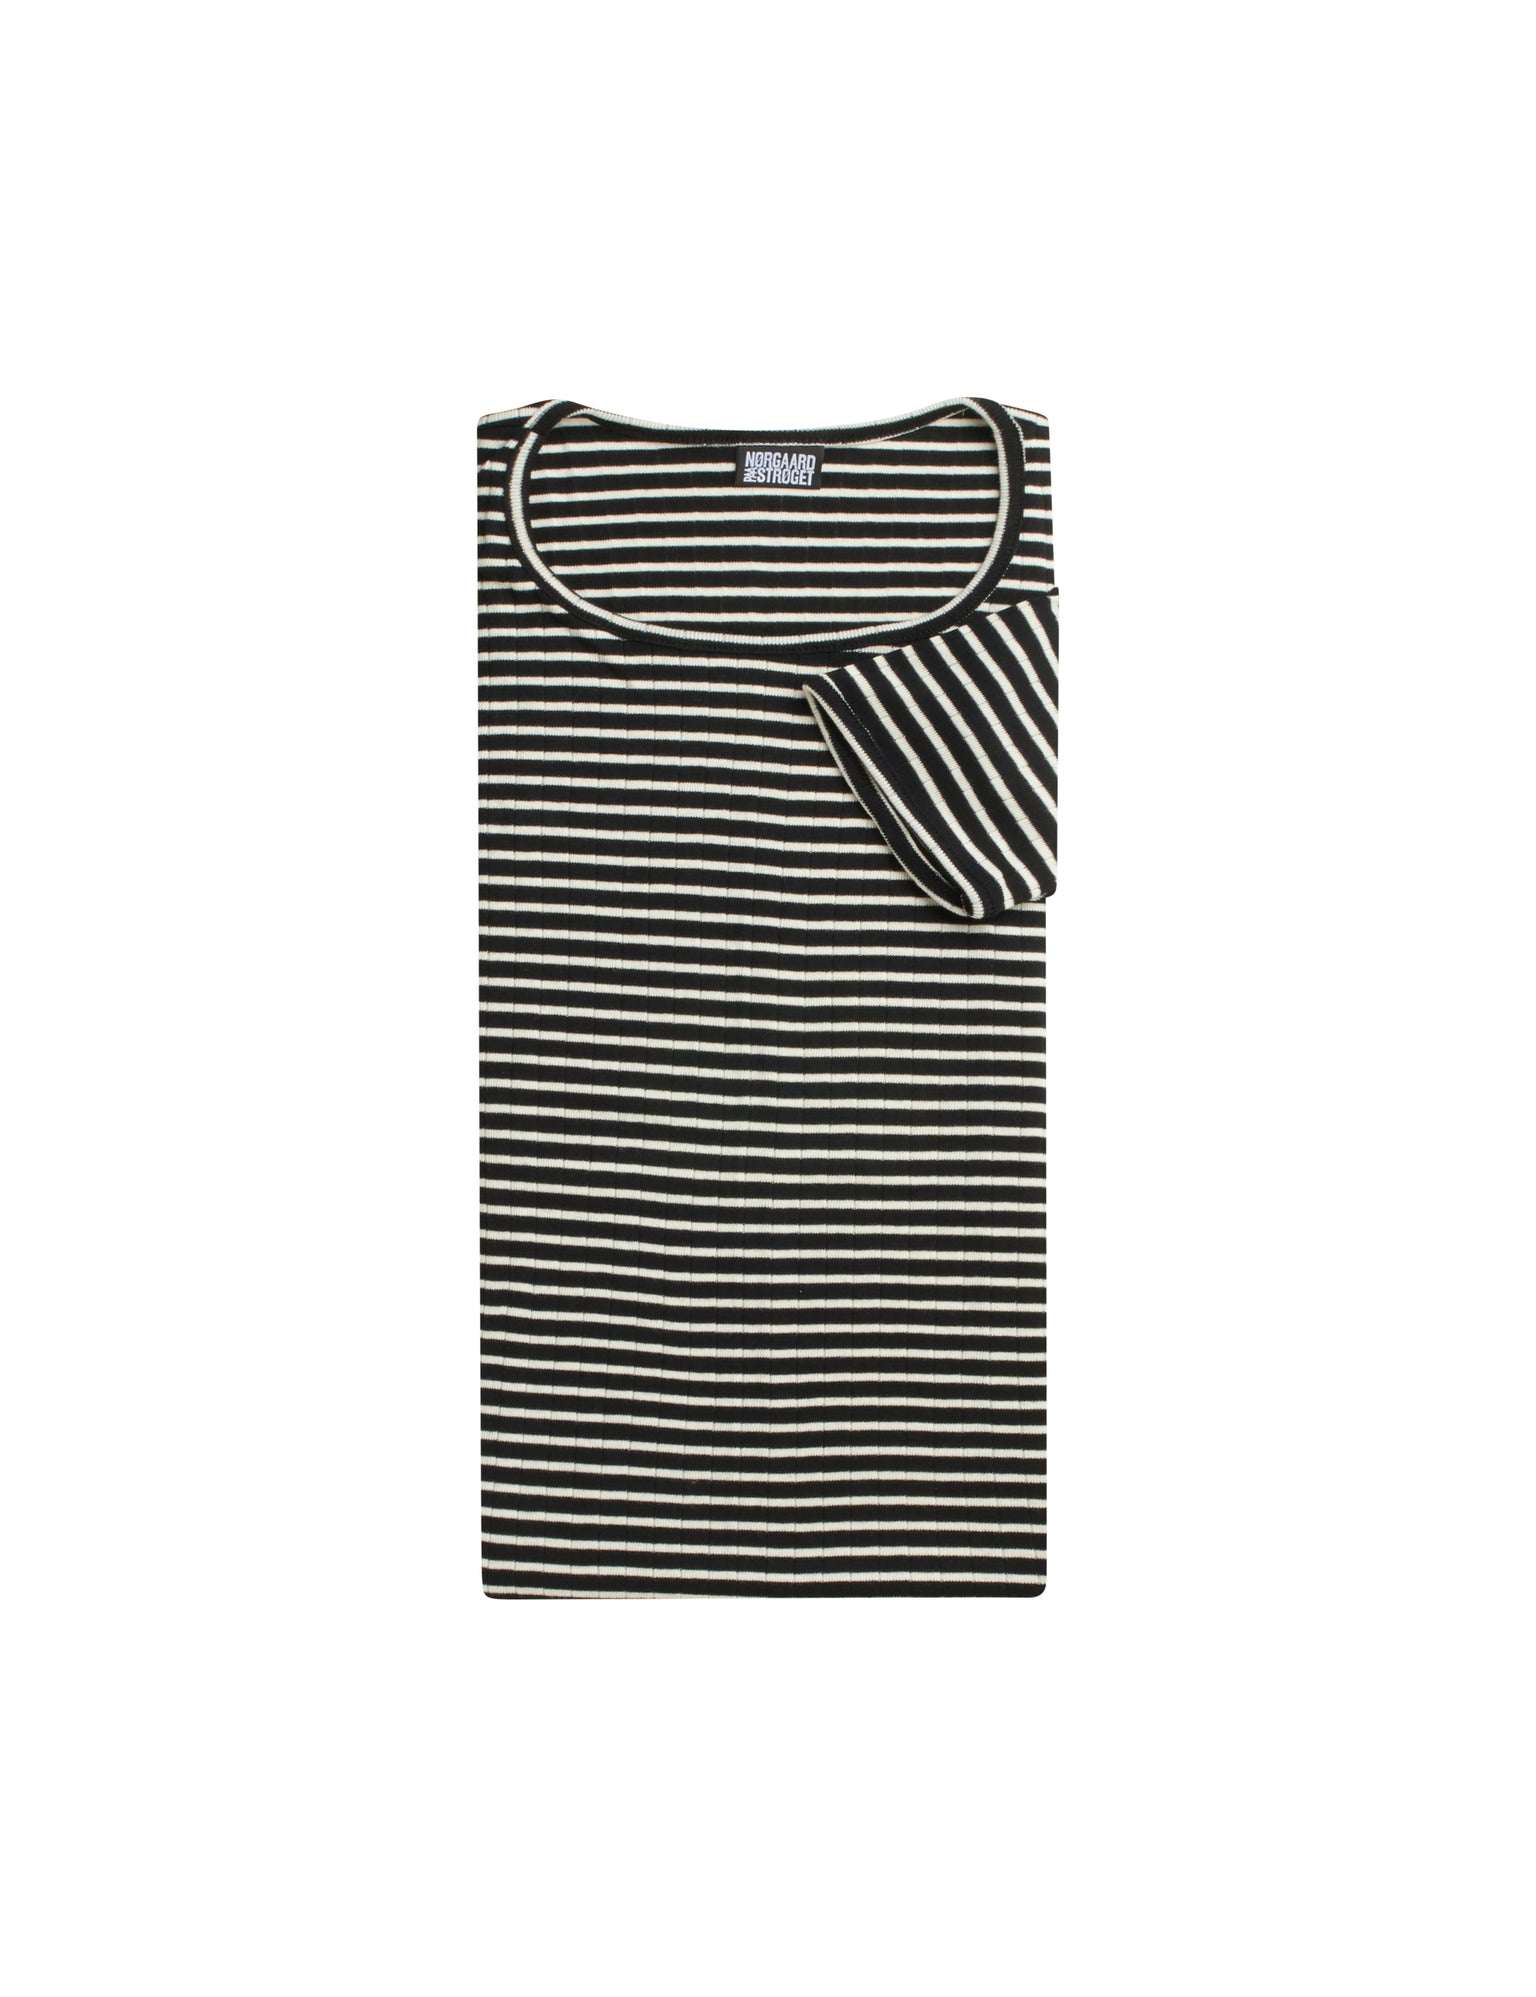 101 Short Sleeve NPS Stripes, Black/Ecru